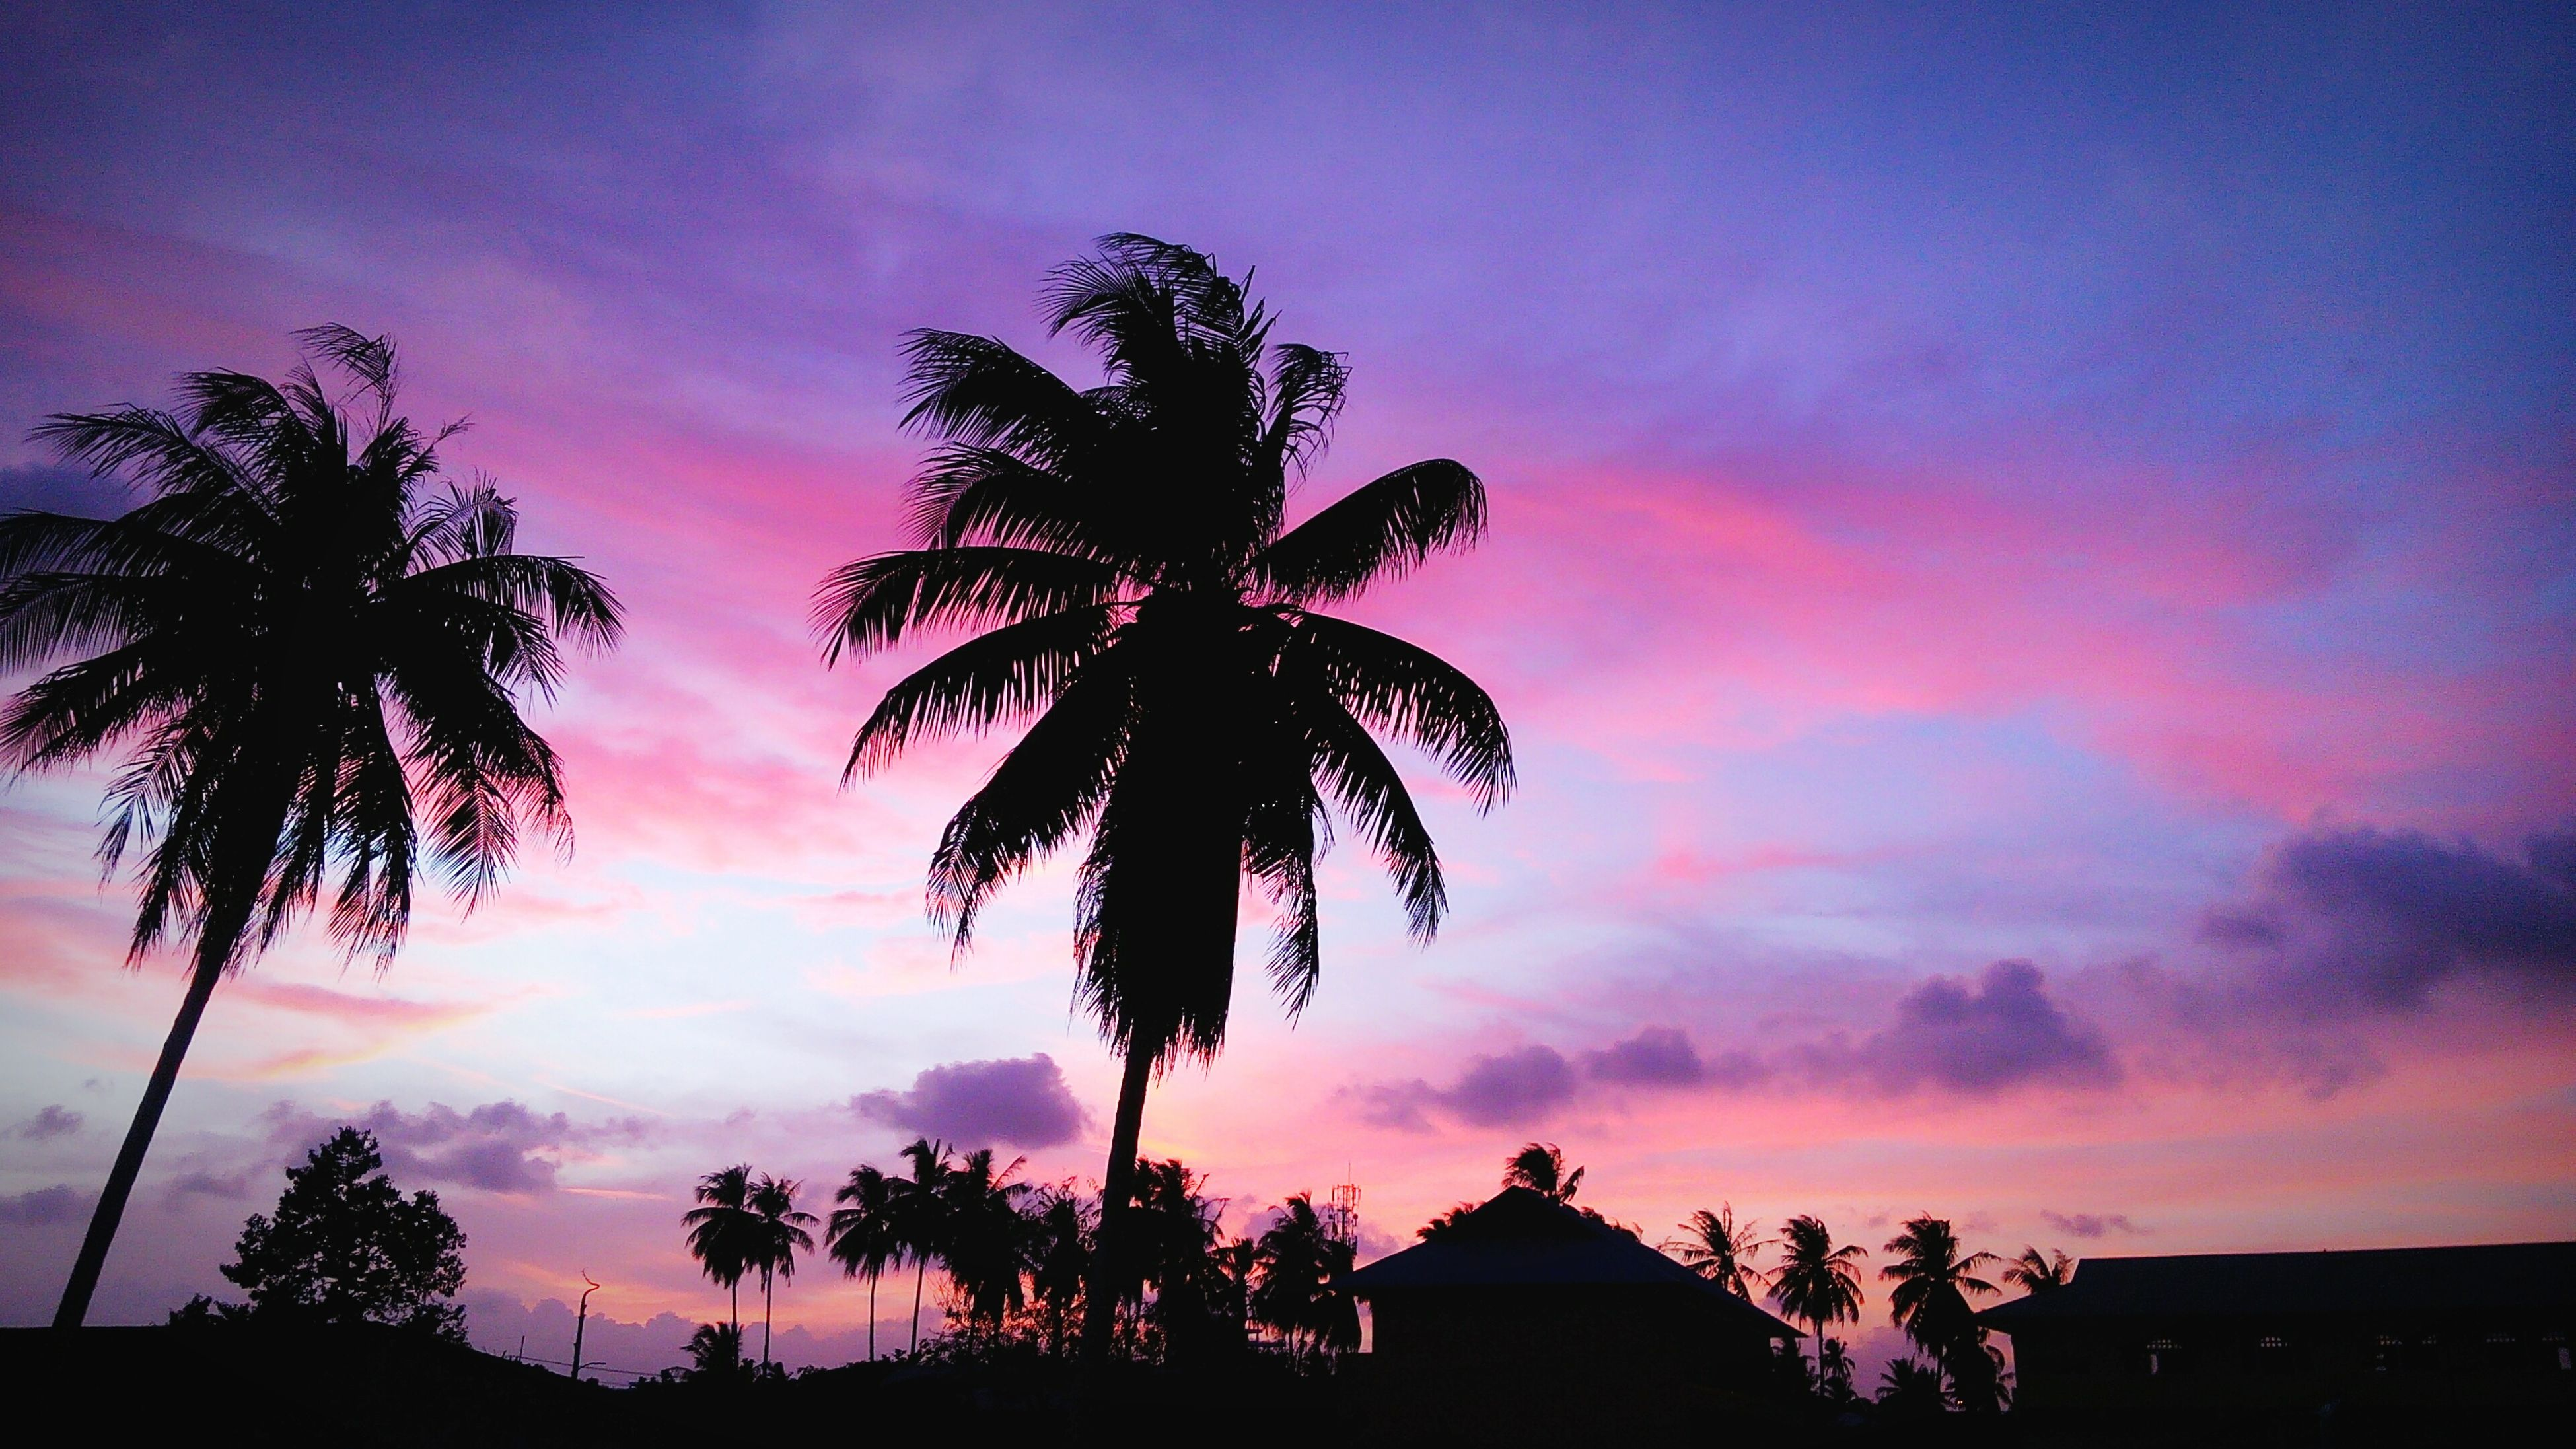 silhouette, sunset, tree, palm tree, sky, low angle view, cloud - sky, beauty in nature, scenics, nature, tranquility, built structure, orange color, dusk, architecture, growth, tranquil scene, dramatic sky, cloud, outdoors